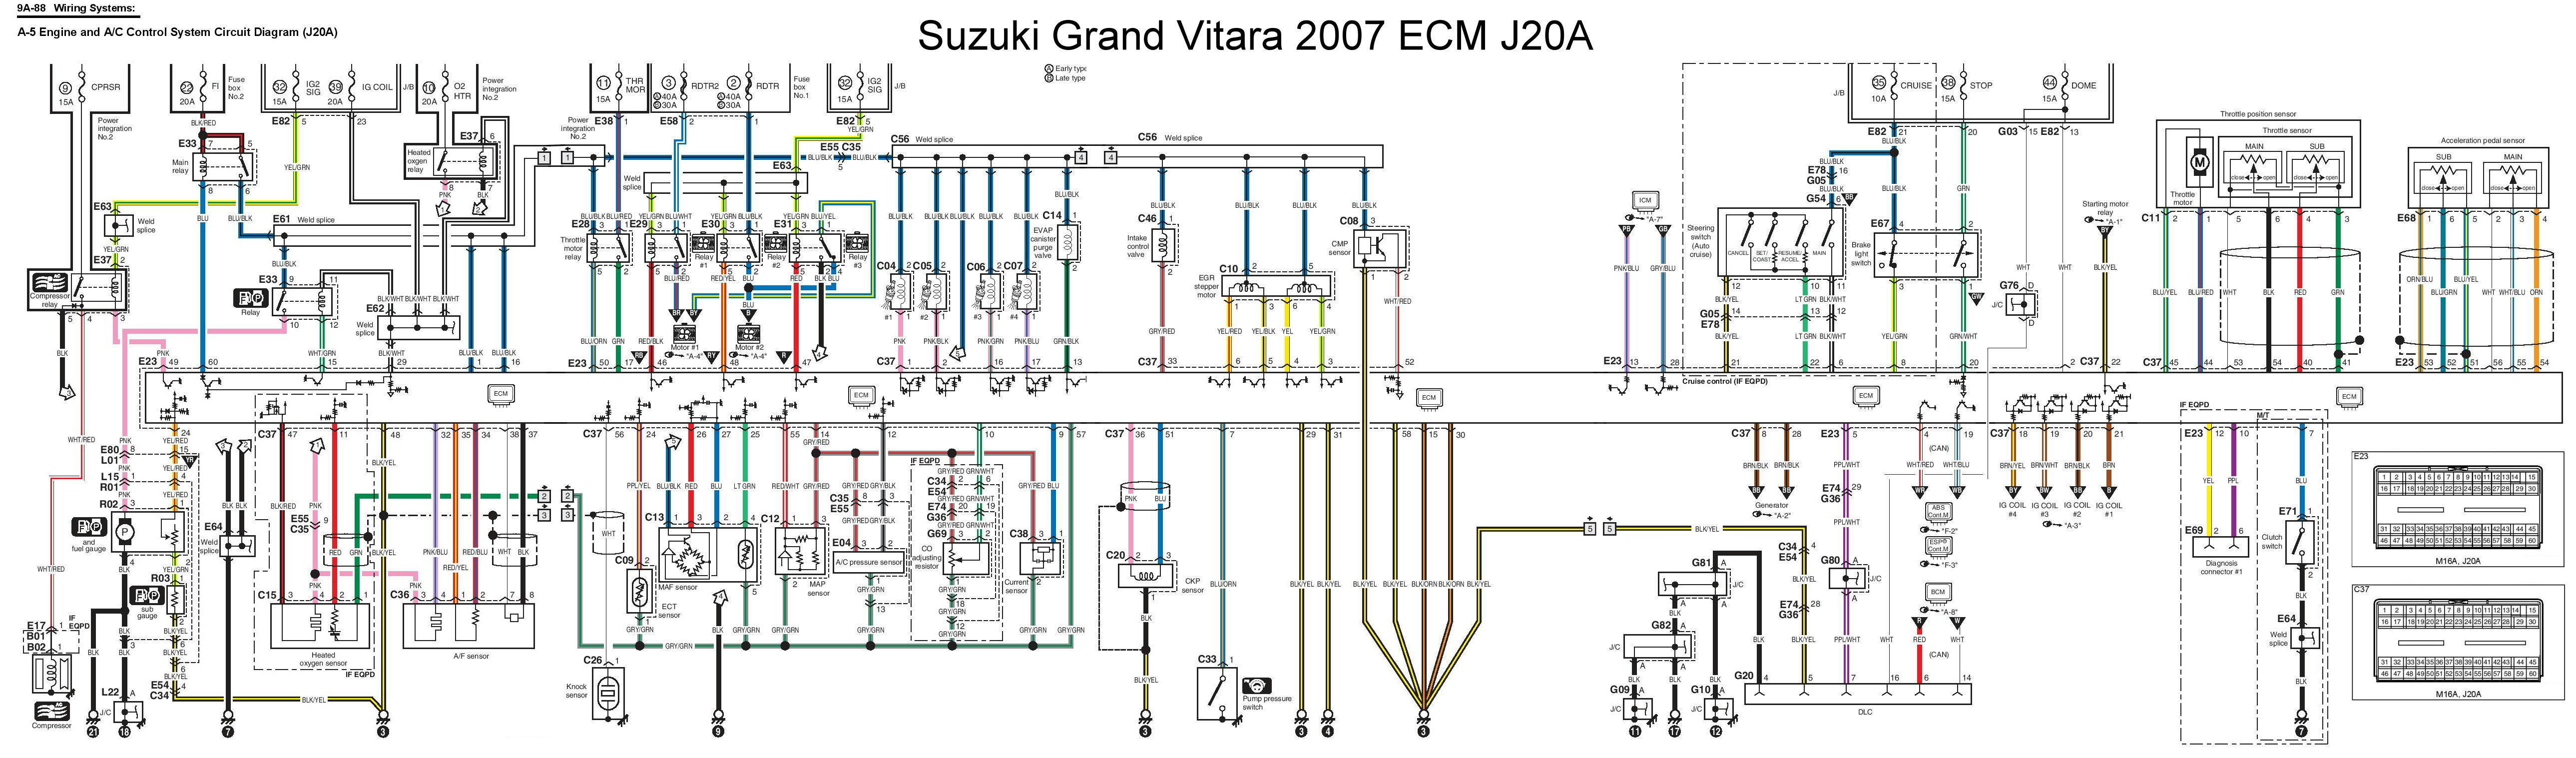 WRG-7511] Suzuki Xl7 Fuse Box Diagram on